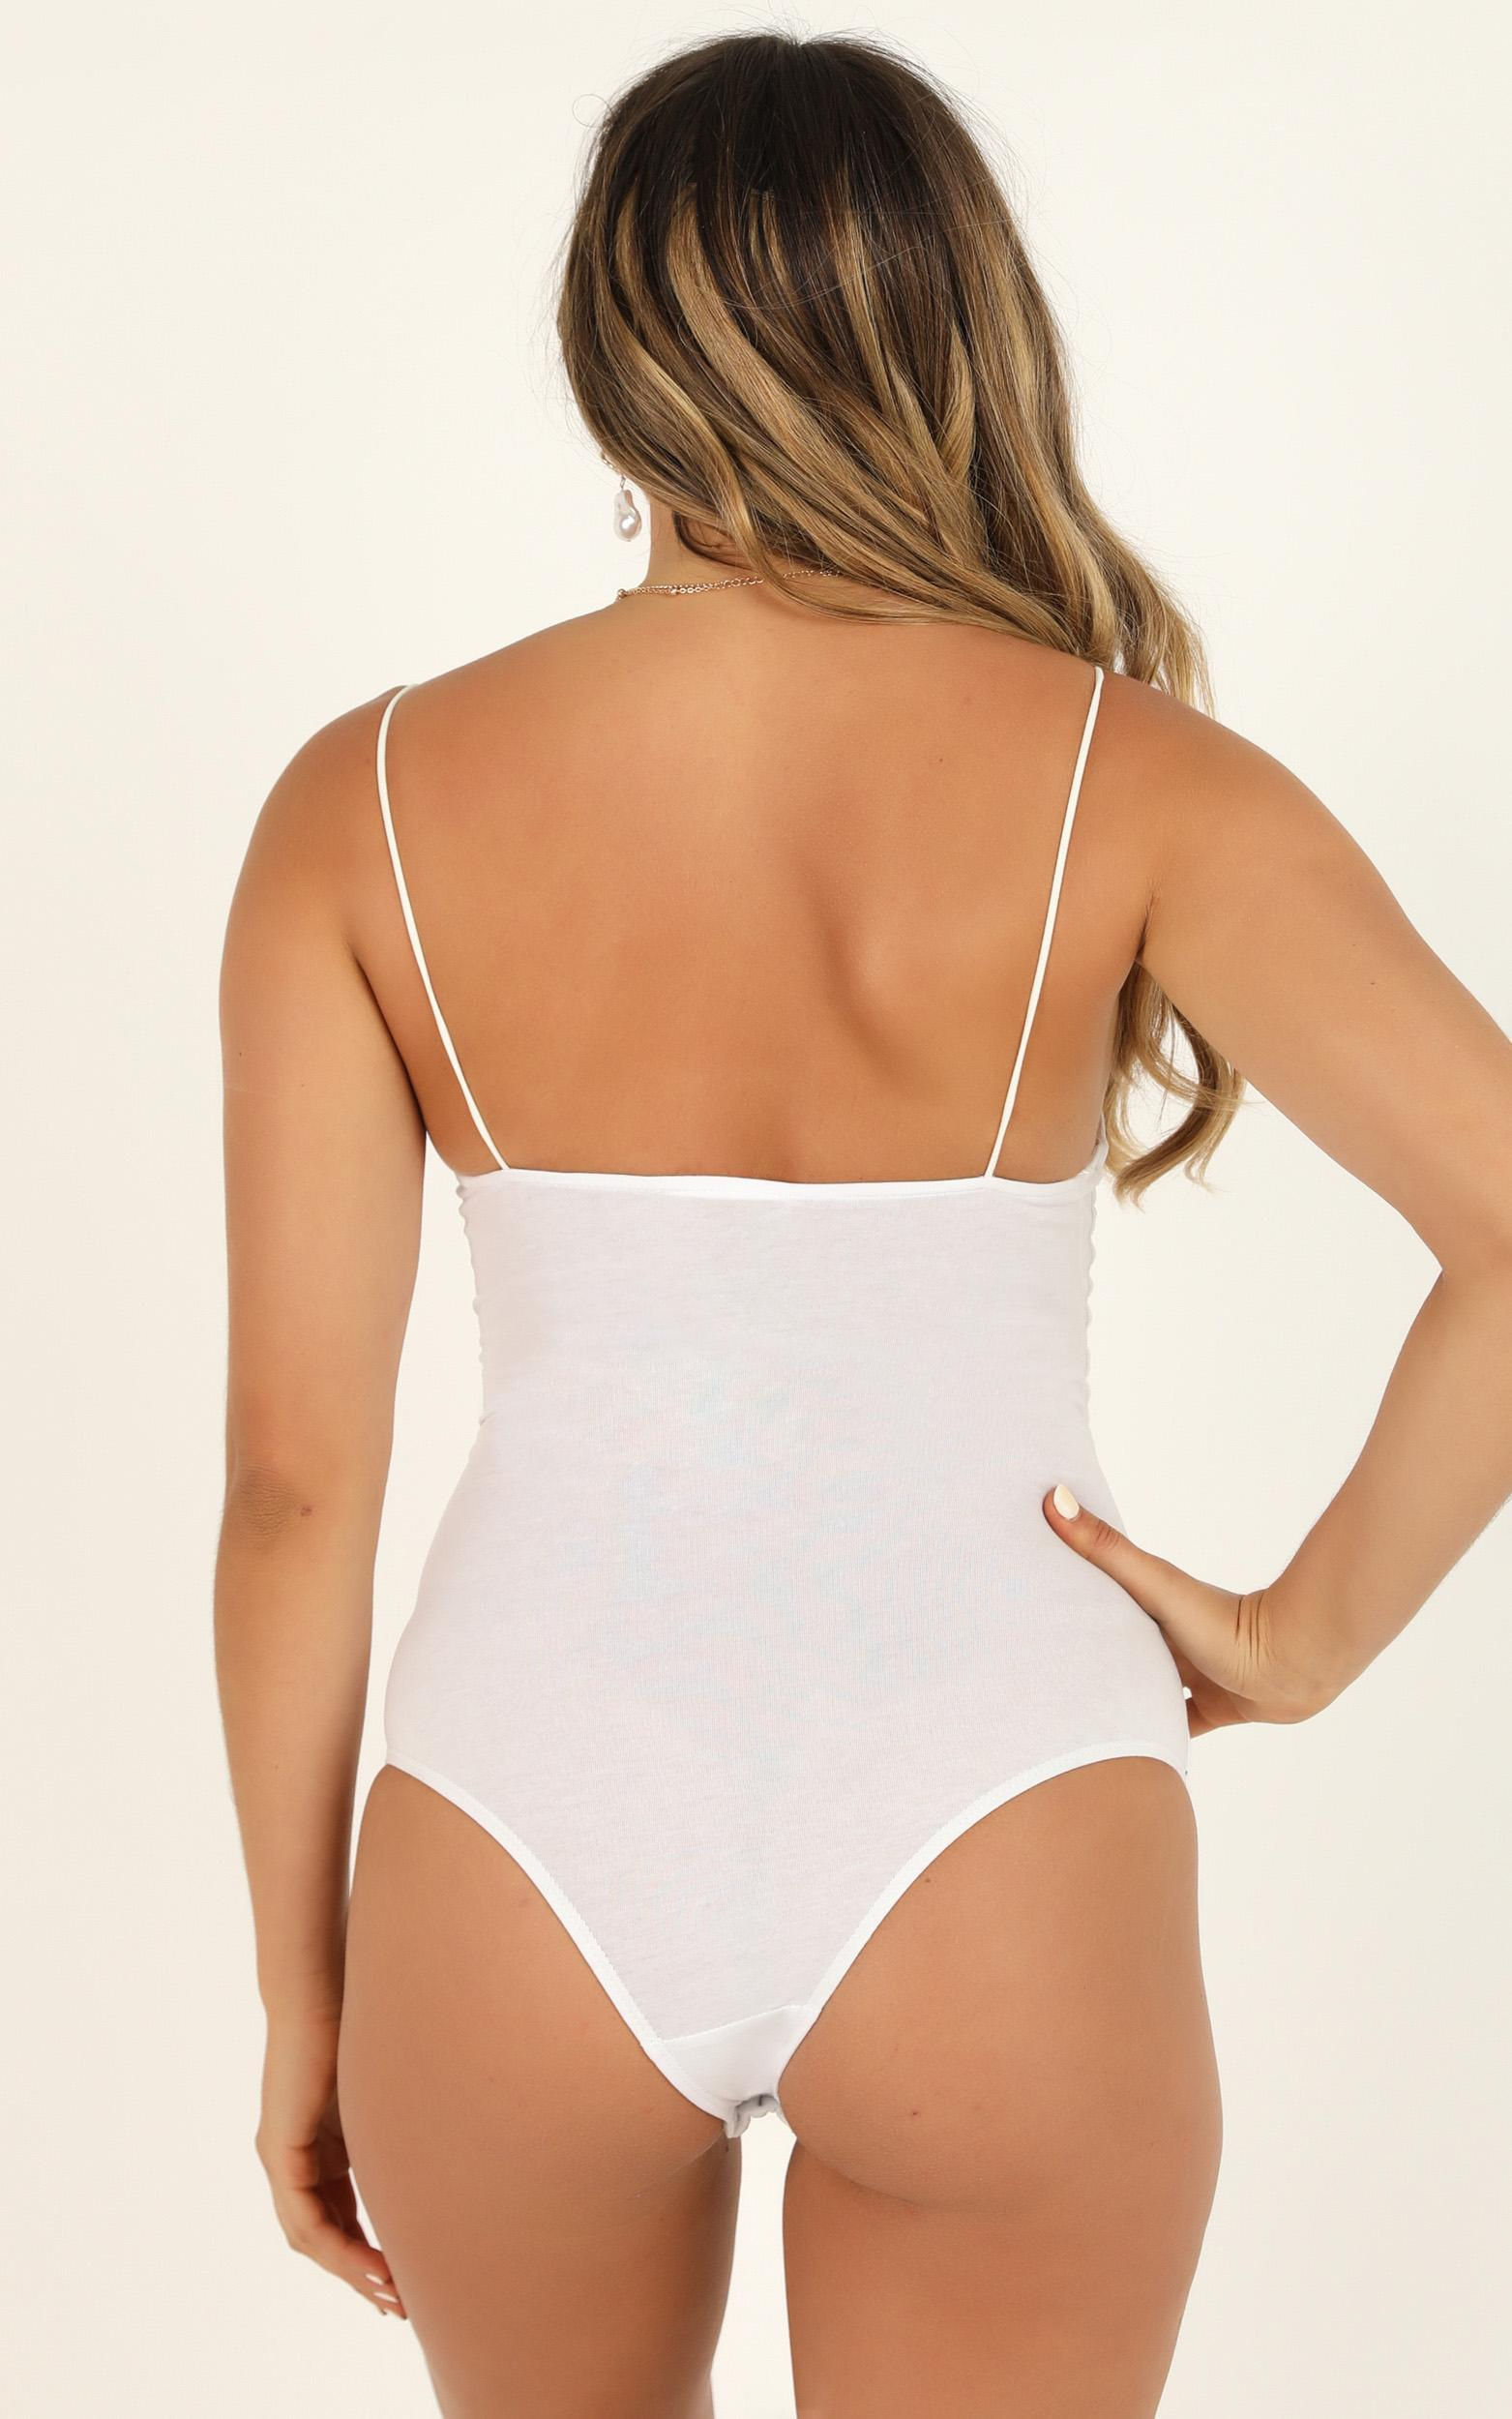 Stitched You Up bodysuit in white  - 20 (XXXXL), White, hi-res image number null